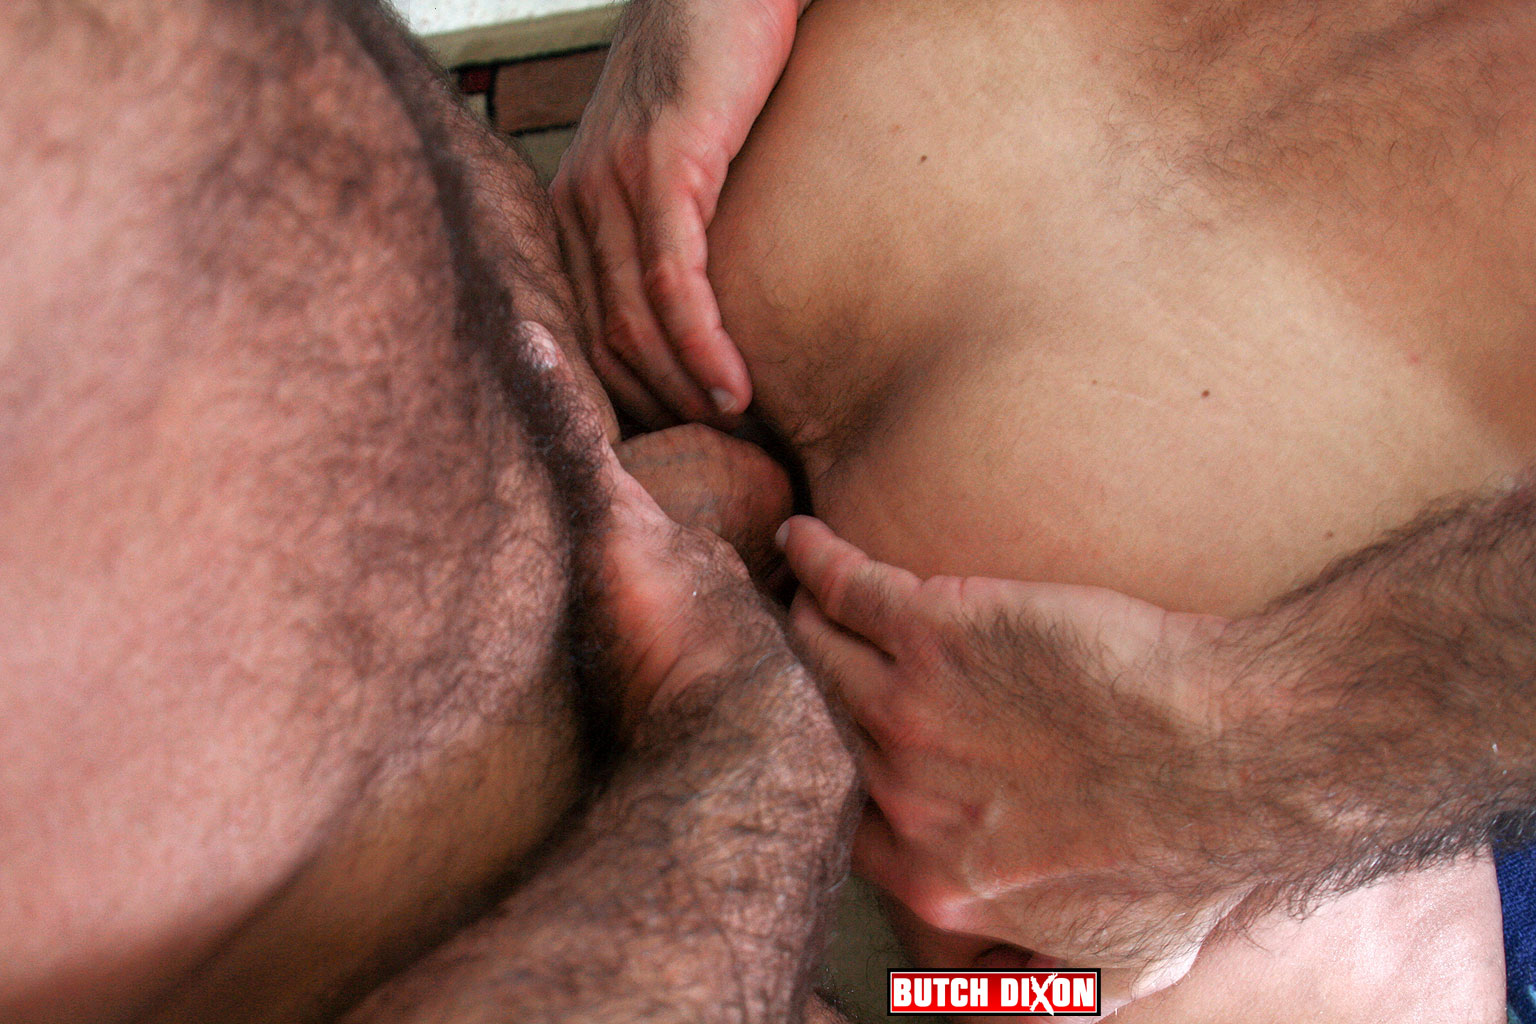 Butch-Dixon-Jeff-Grove-and-Josh-Ford-Hairy-Daddies-Fucking-with-this-Hairy-Daddy-Cock-10 Jeff Grove and Josh Ford:  Amateur Hairy Daddies Barebacking